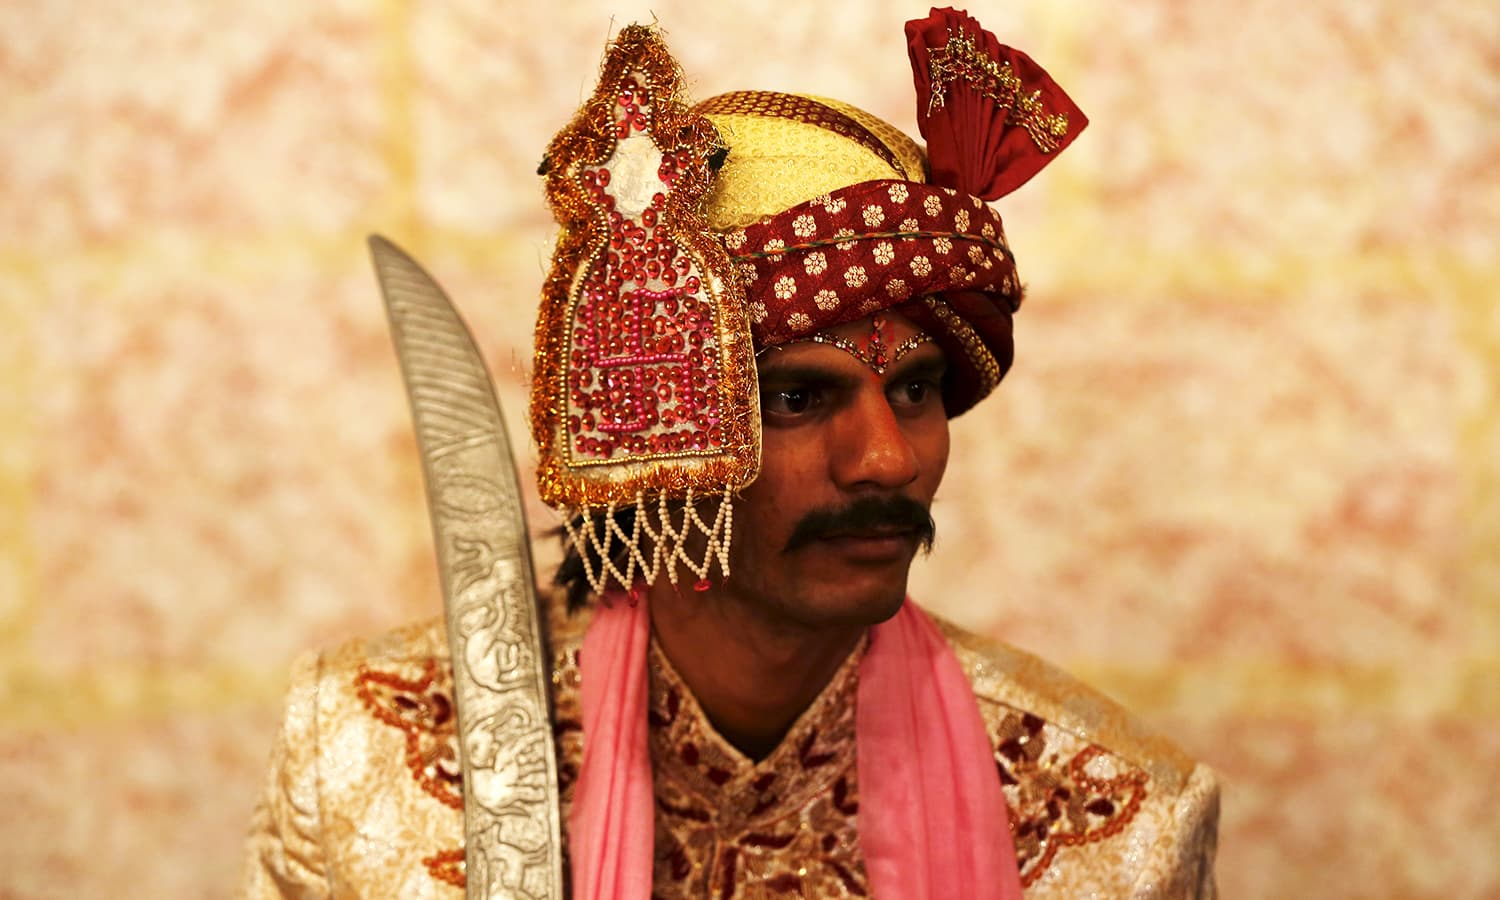 A groom in traditional dress waits for his wedding to start. ─ Reuters